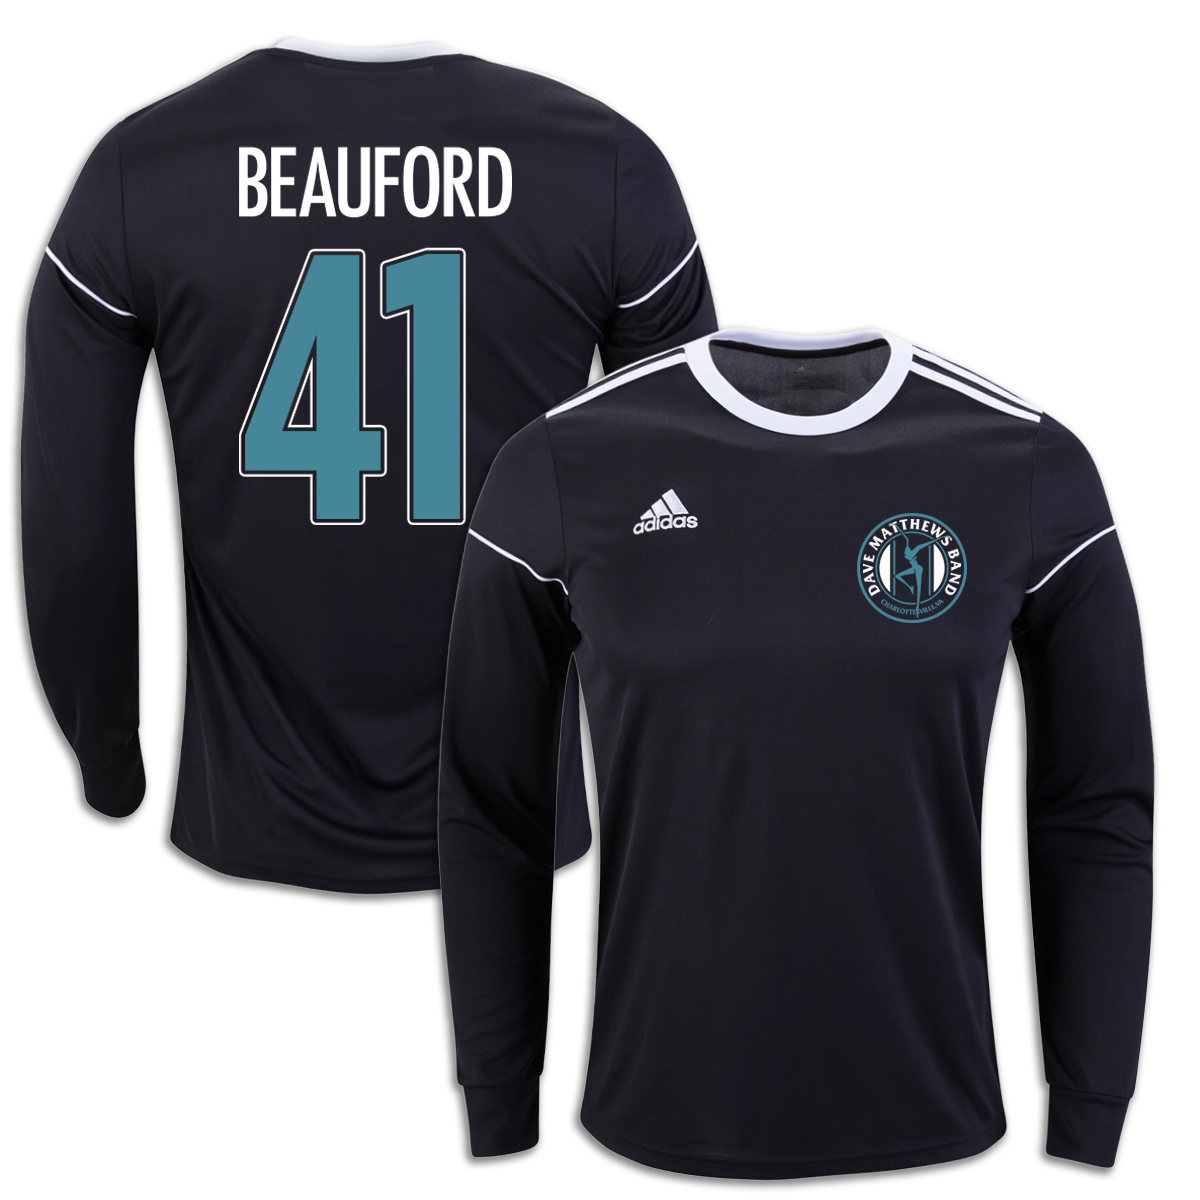 Long Sleeve Beauford Jersey